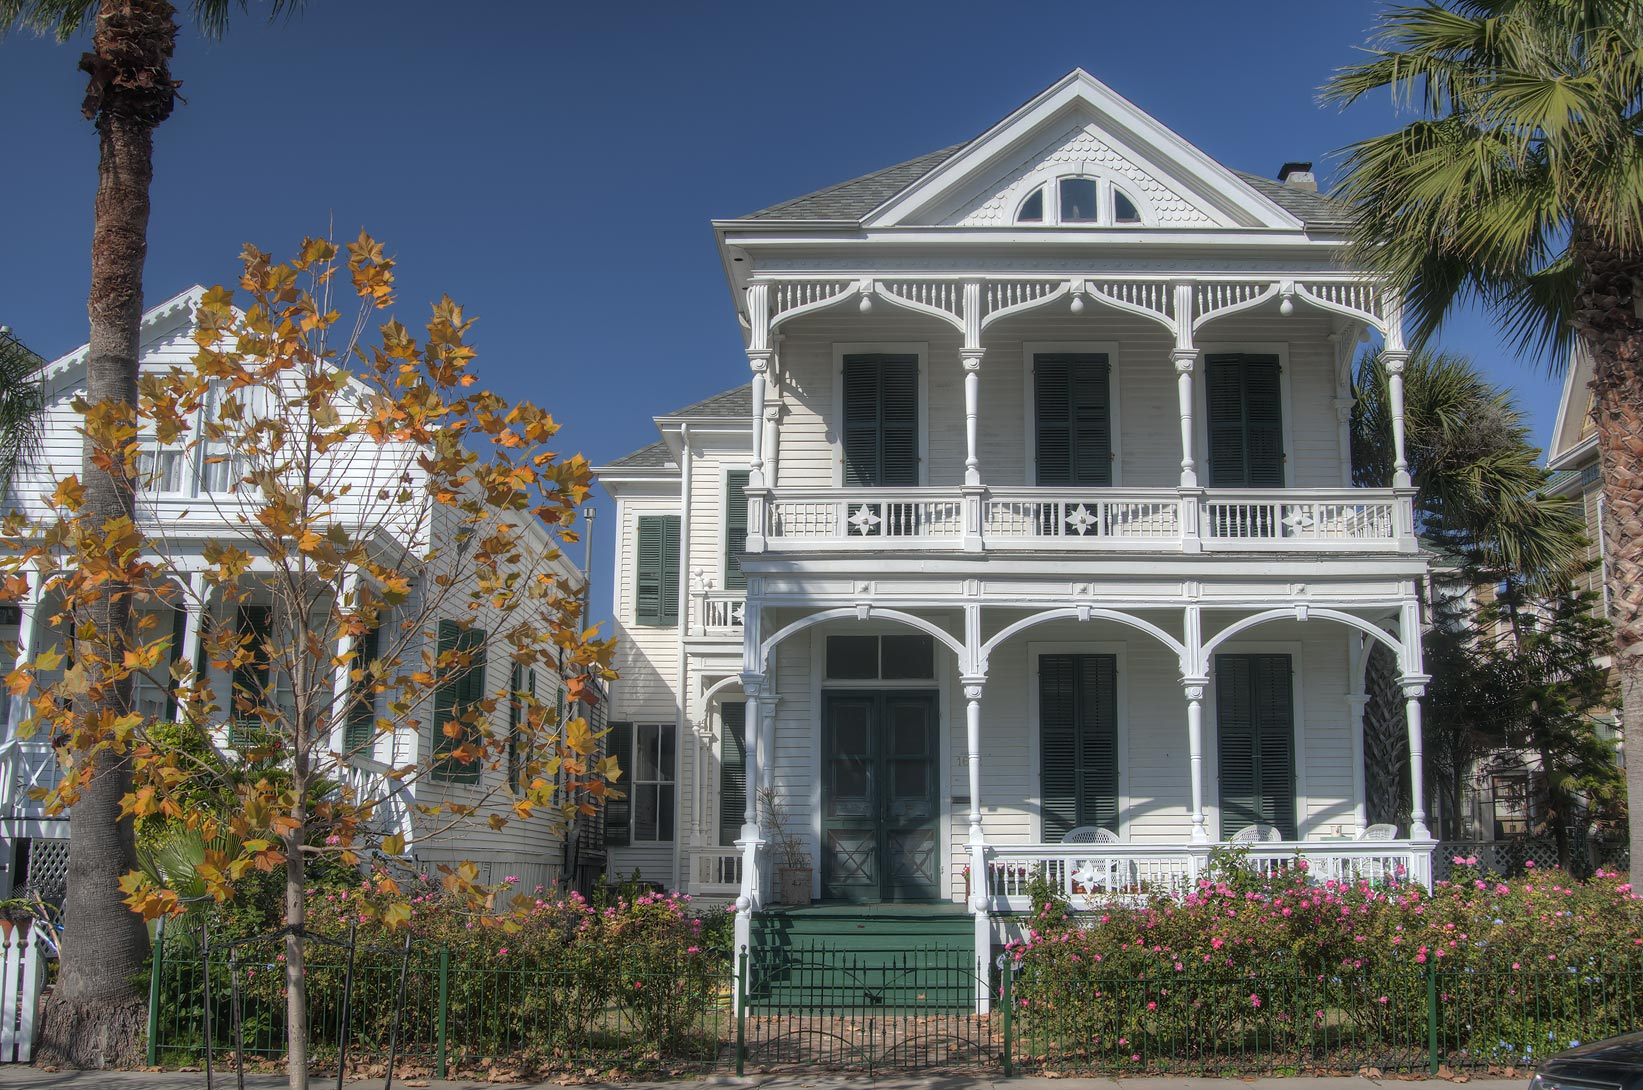 Ball Street in East End Historic District. Galveston, Texas